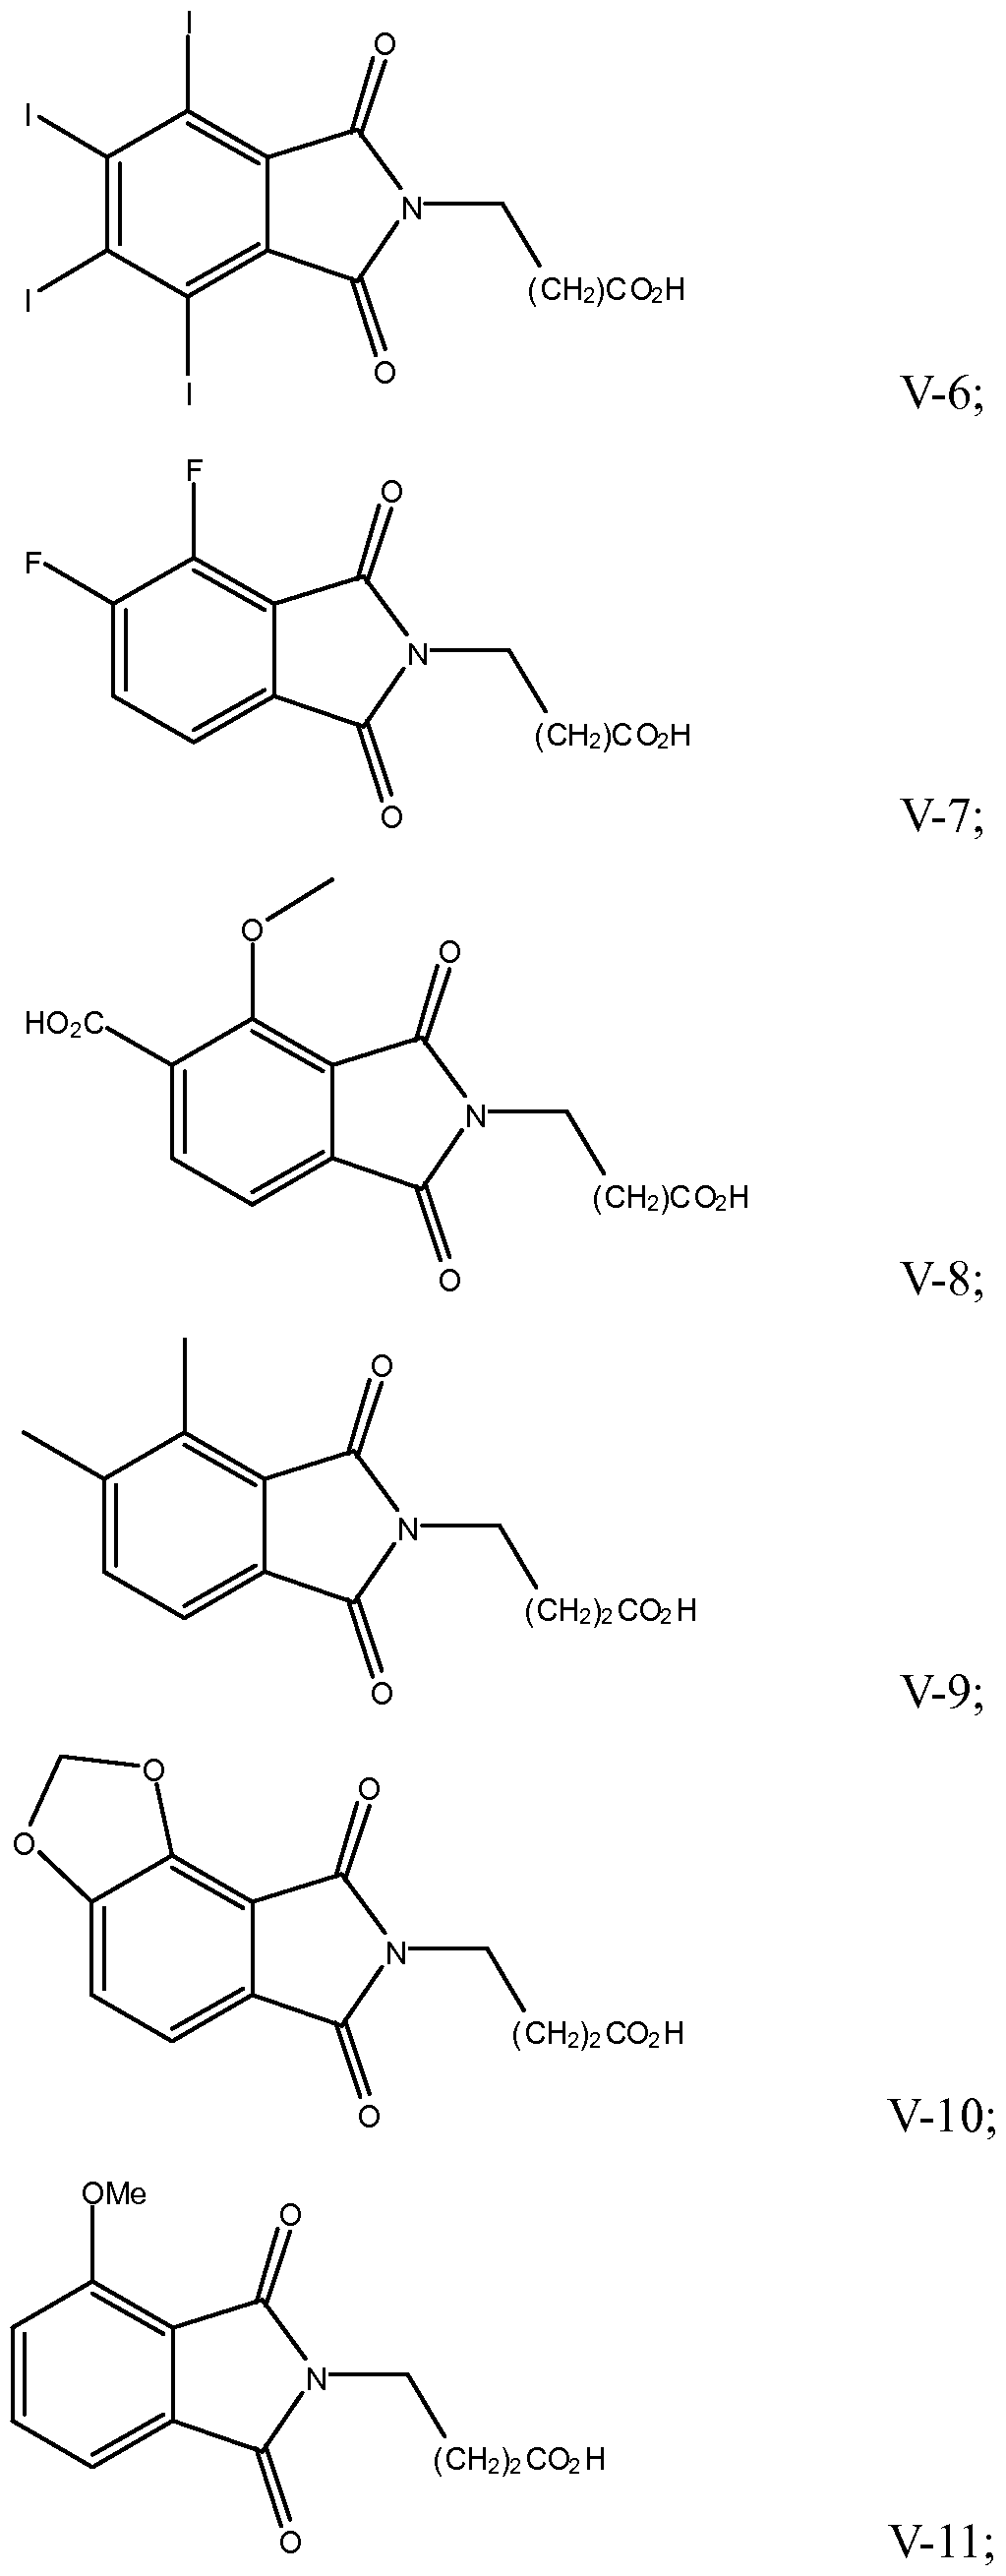 WO2010053606A2 - Small-molecule inhibitors of protein synthesis